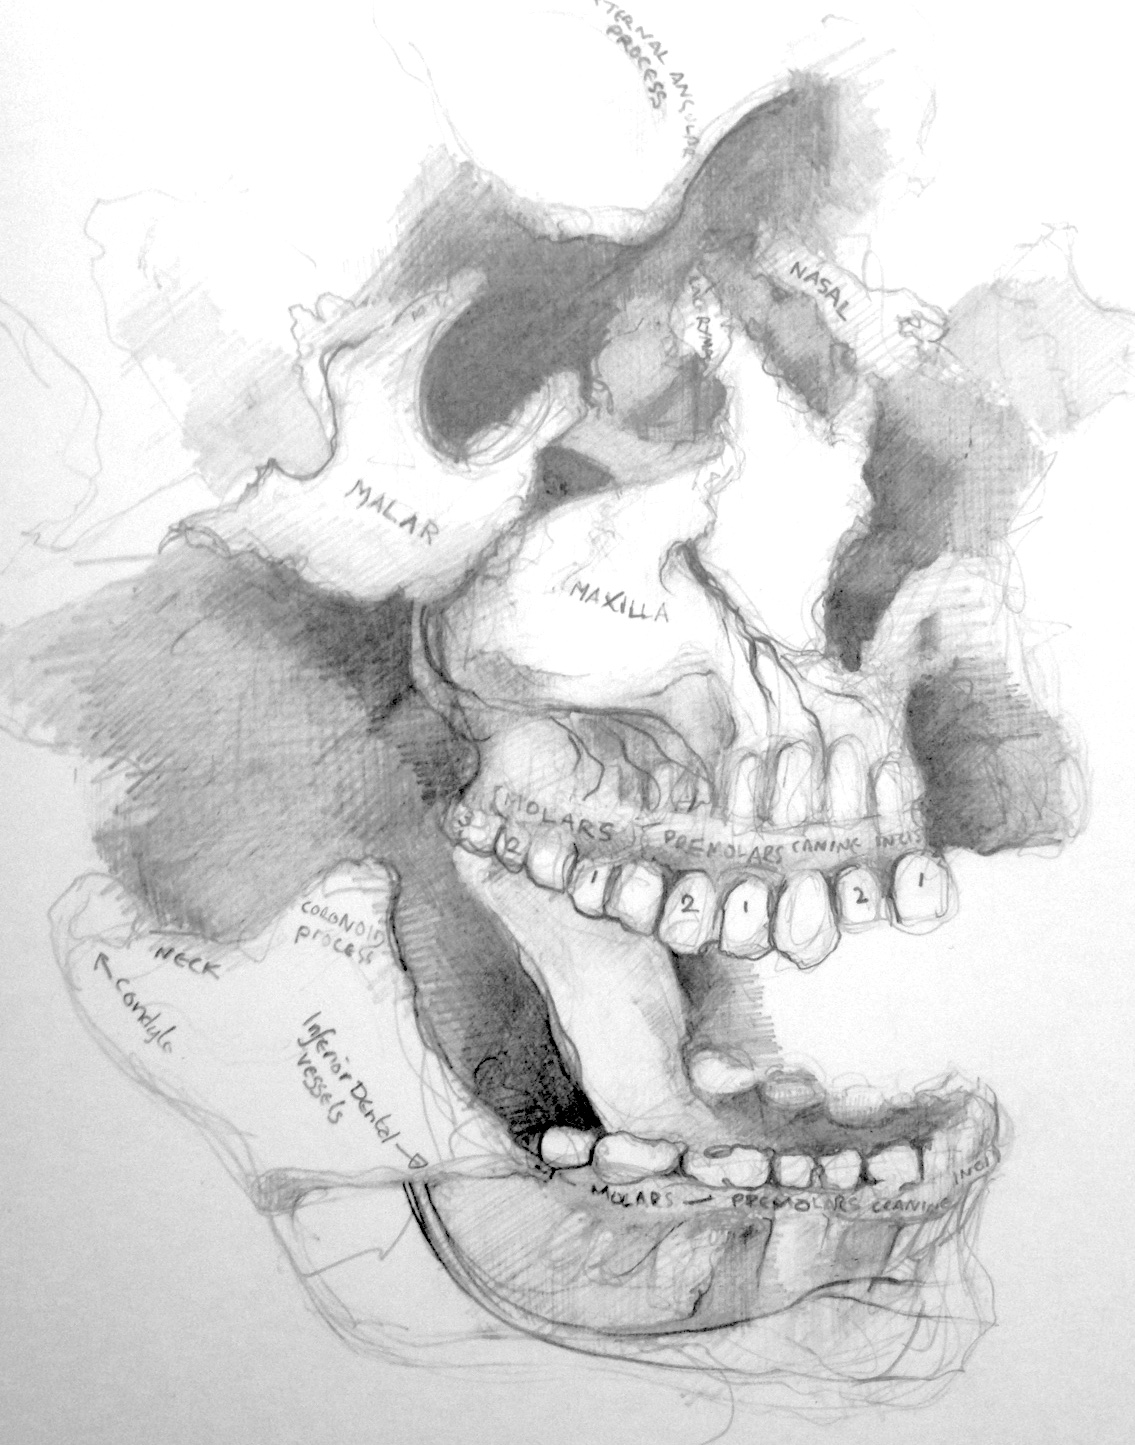 1135x1445 Dundee, Theil Cadavers And Exploded Skulls Disfiguration